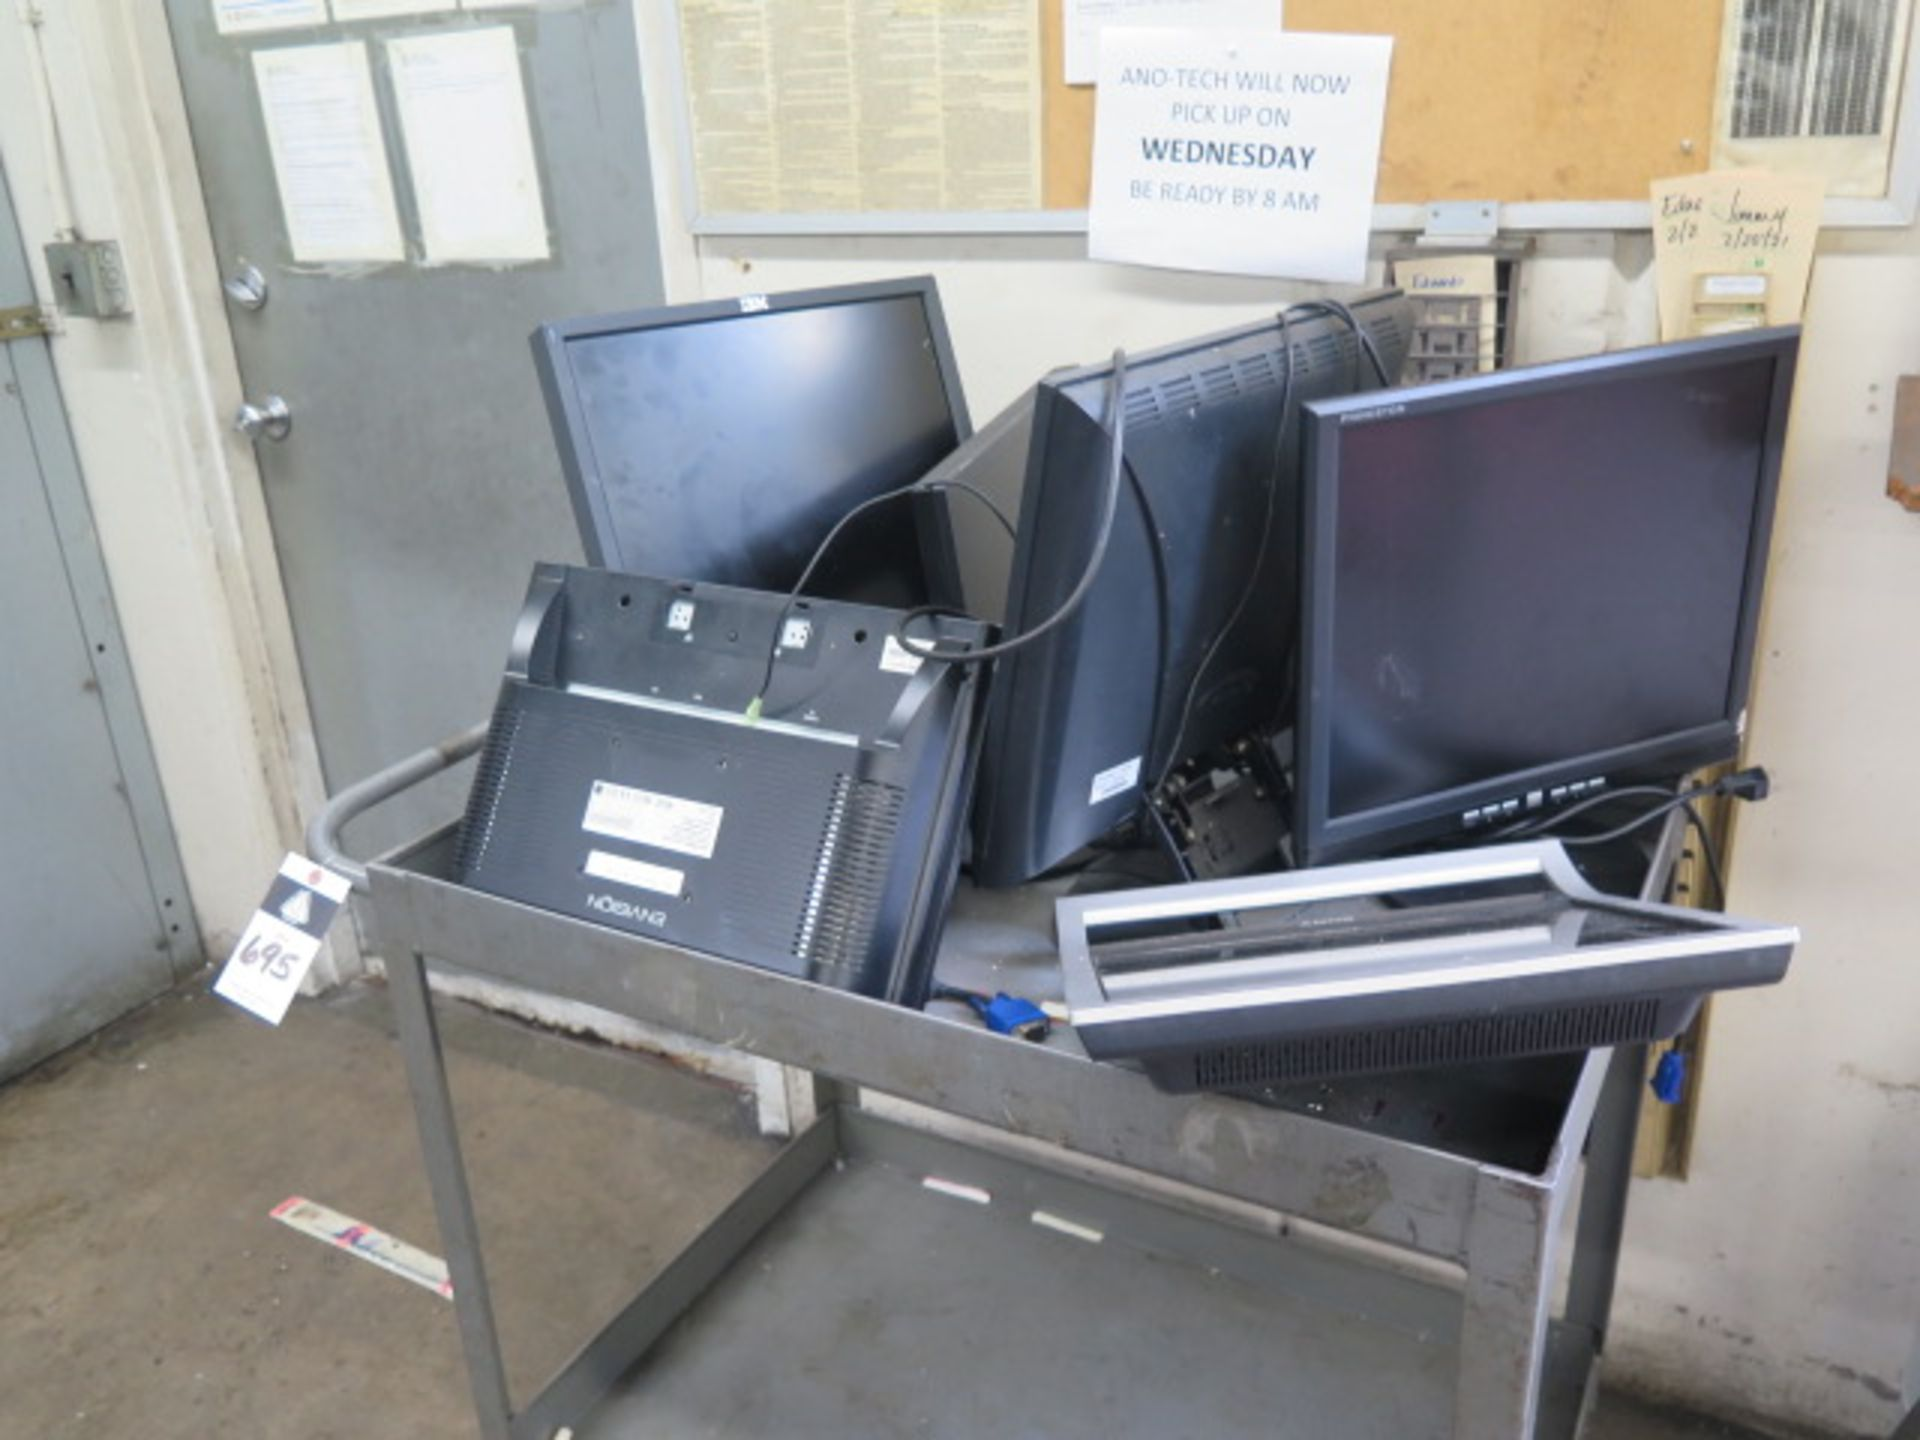 Computer Monitors w/ Cart (SOLD AS-IS - NO WARRANTY)